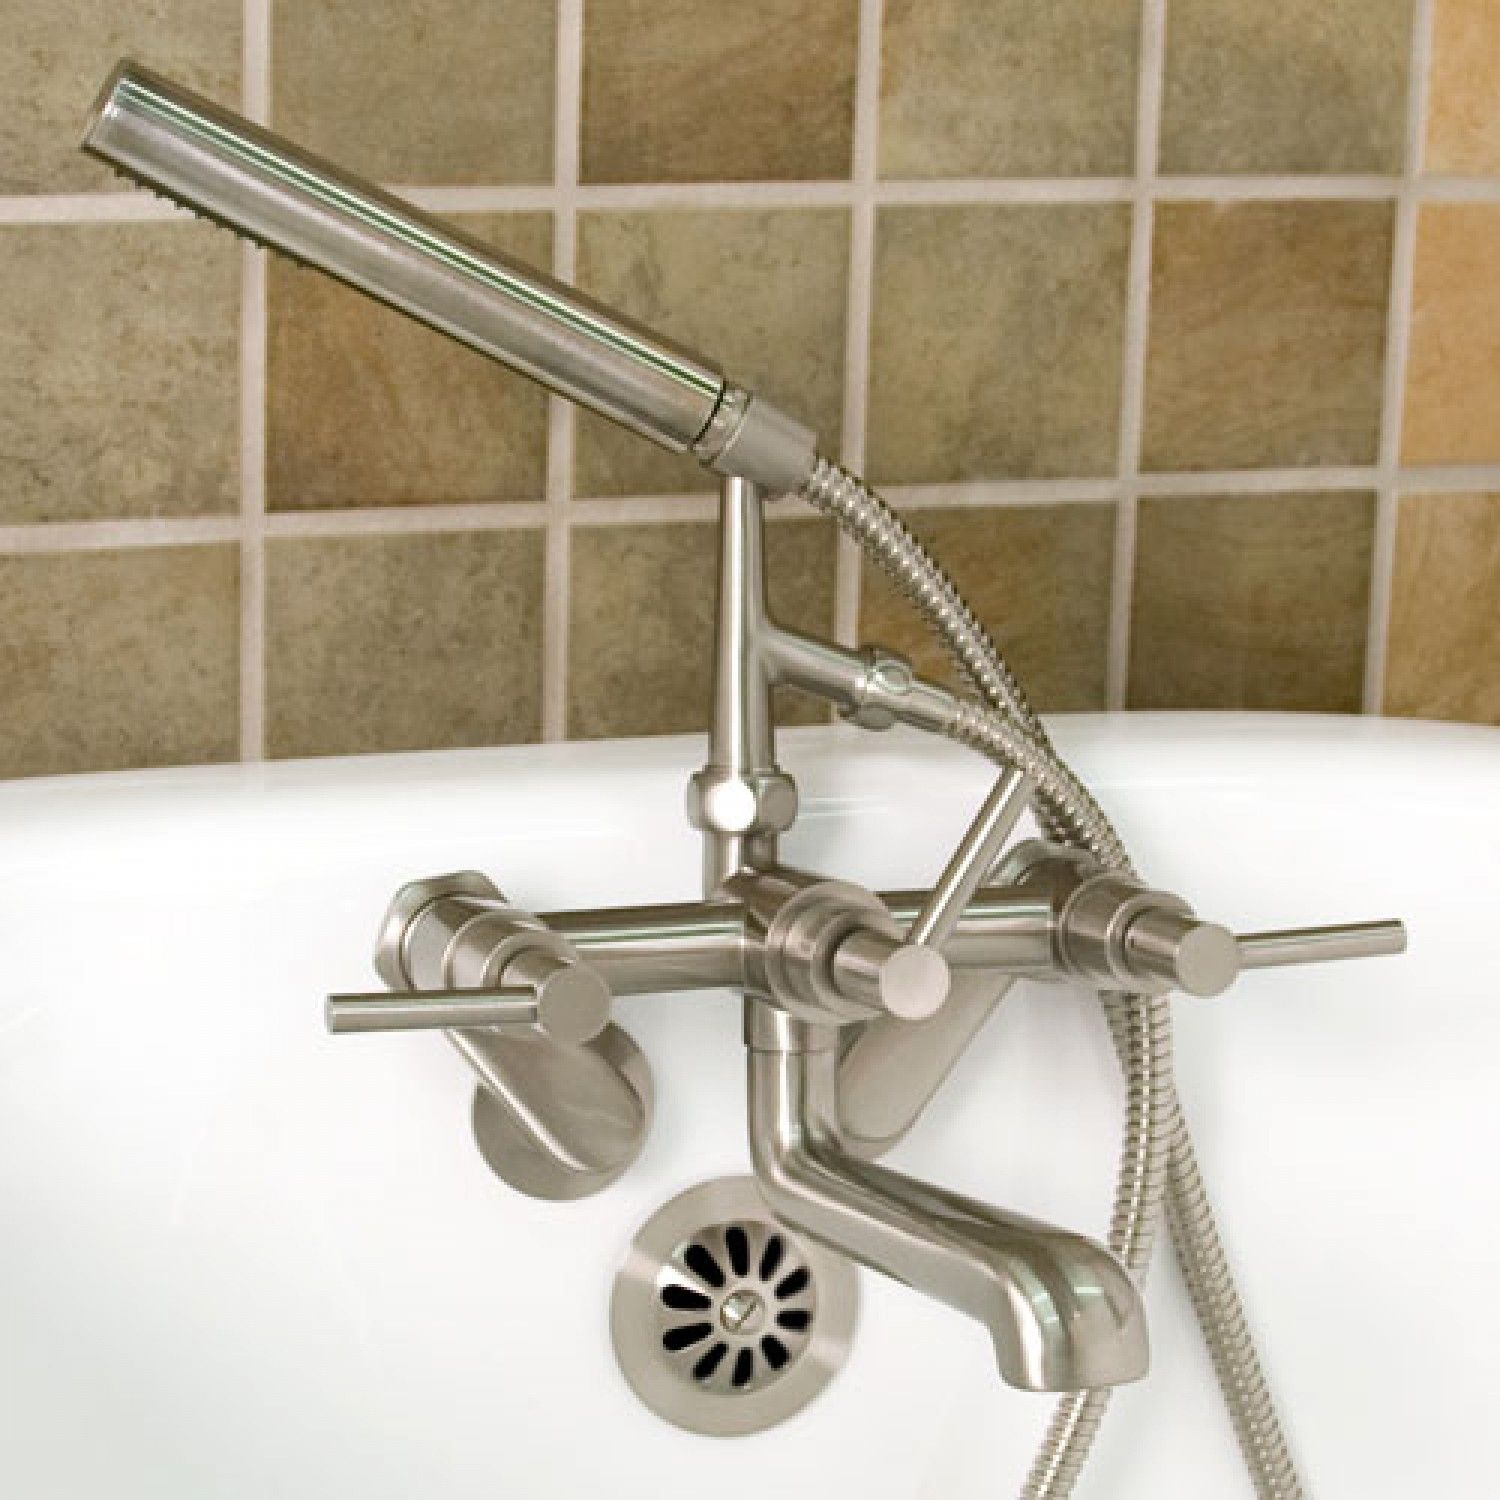 Whittington Tub Wall Mount Faucet With Hand Shower Lever Handles